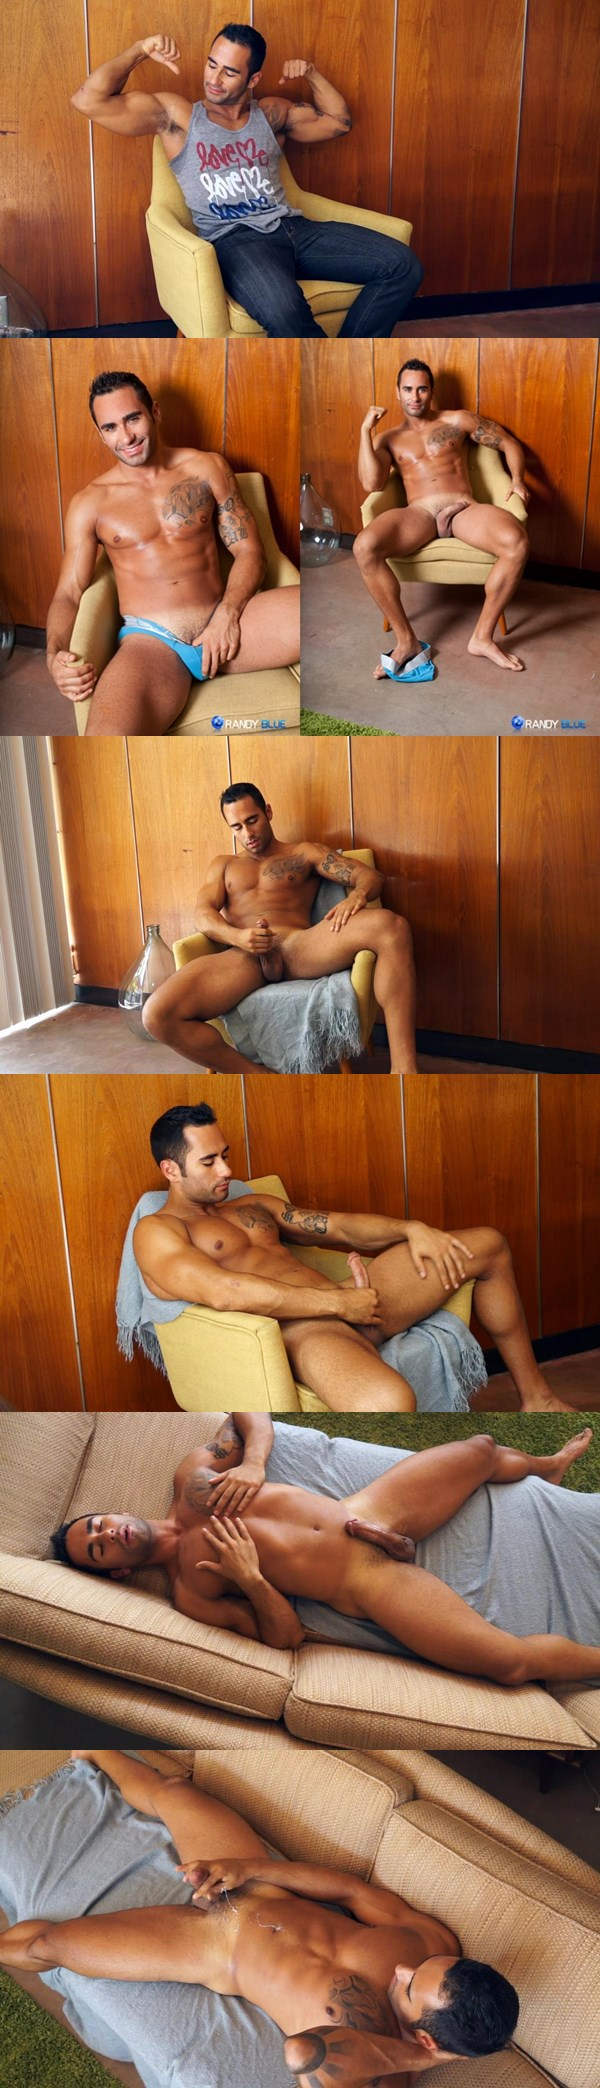 Hot Go Go Dancer Joey Santana shows off his muscles and uploads his creamy load at Randyblue